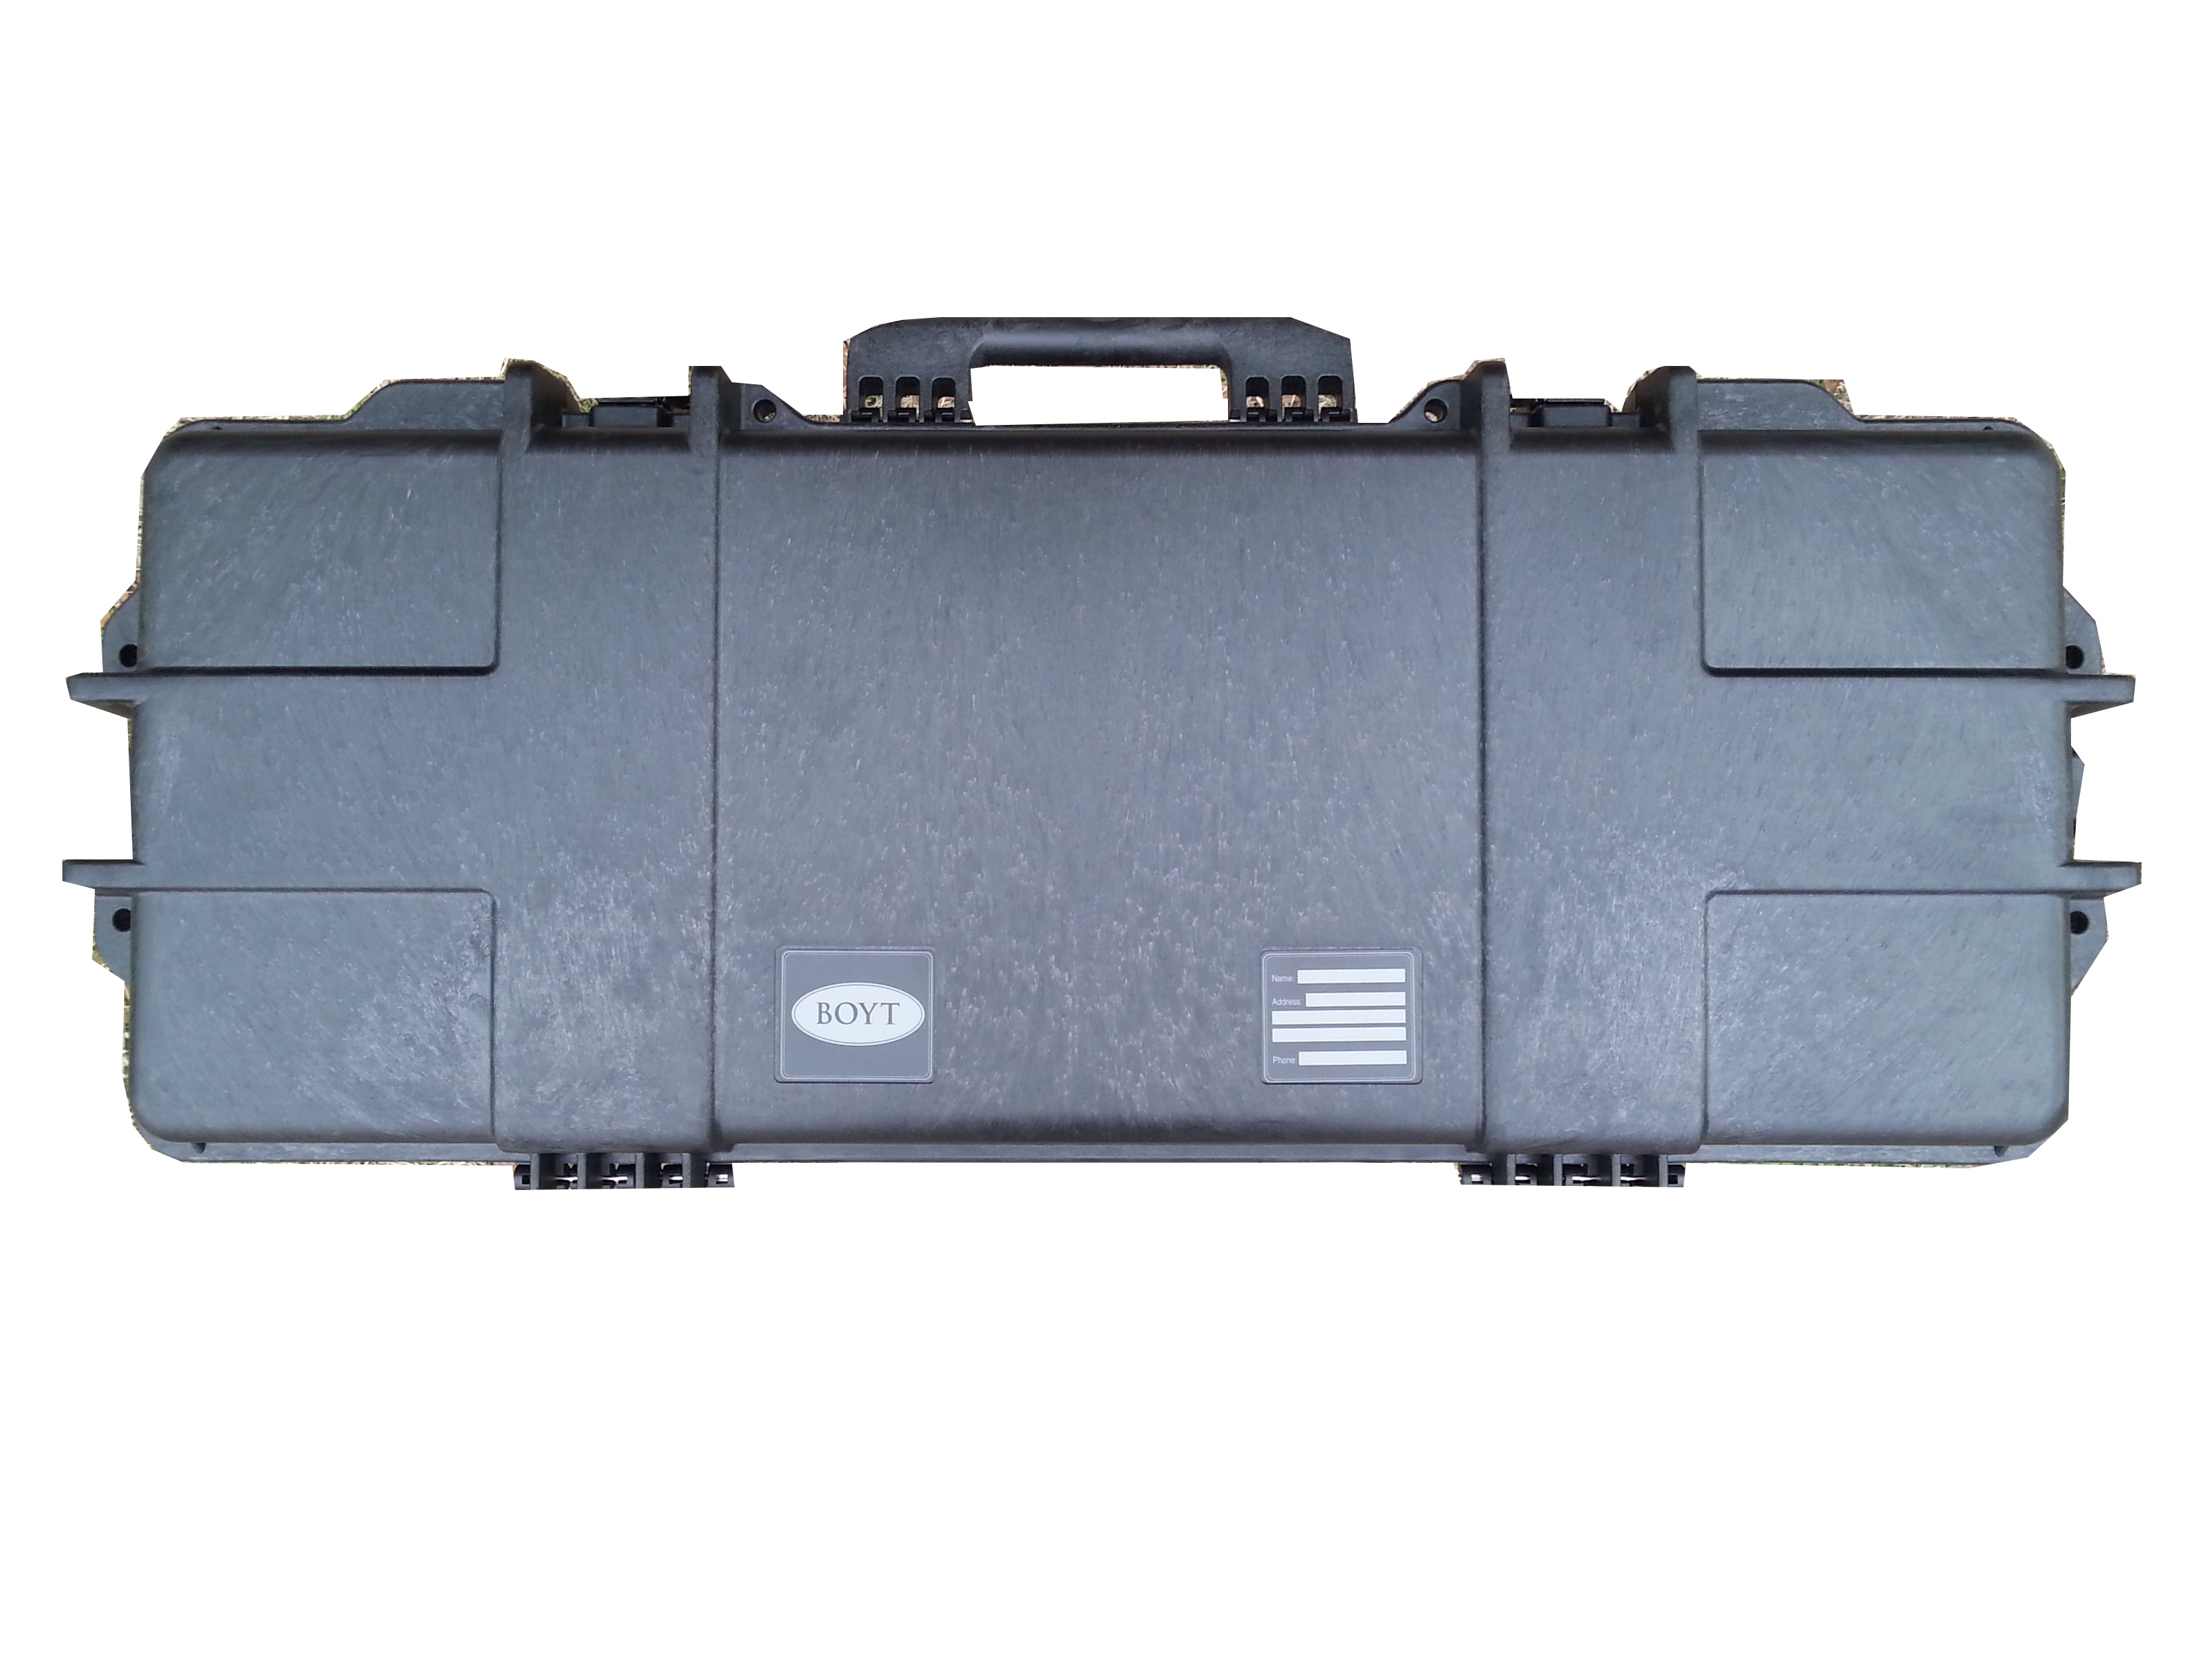 36″ Mil-Std Rifle Case with UNCUT HDPE Foam